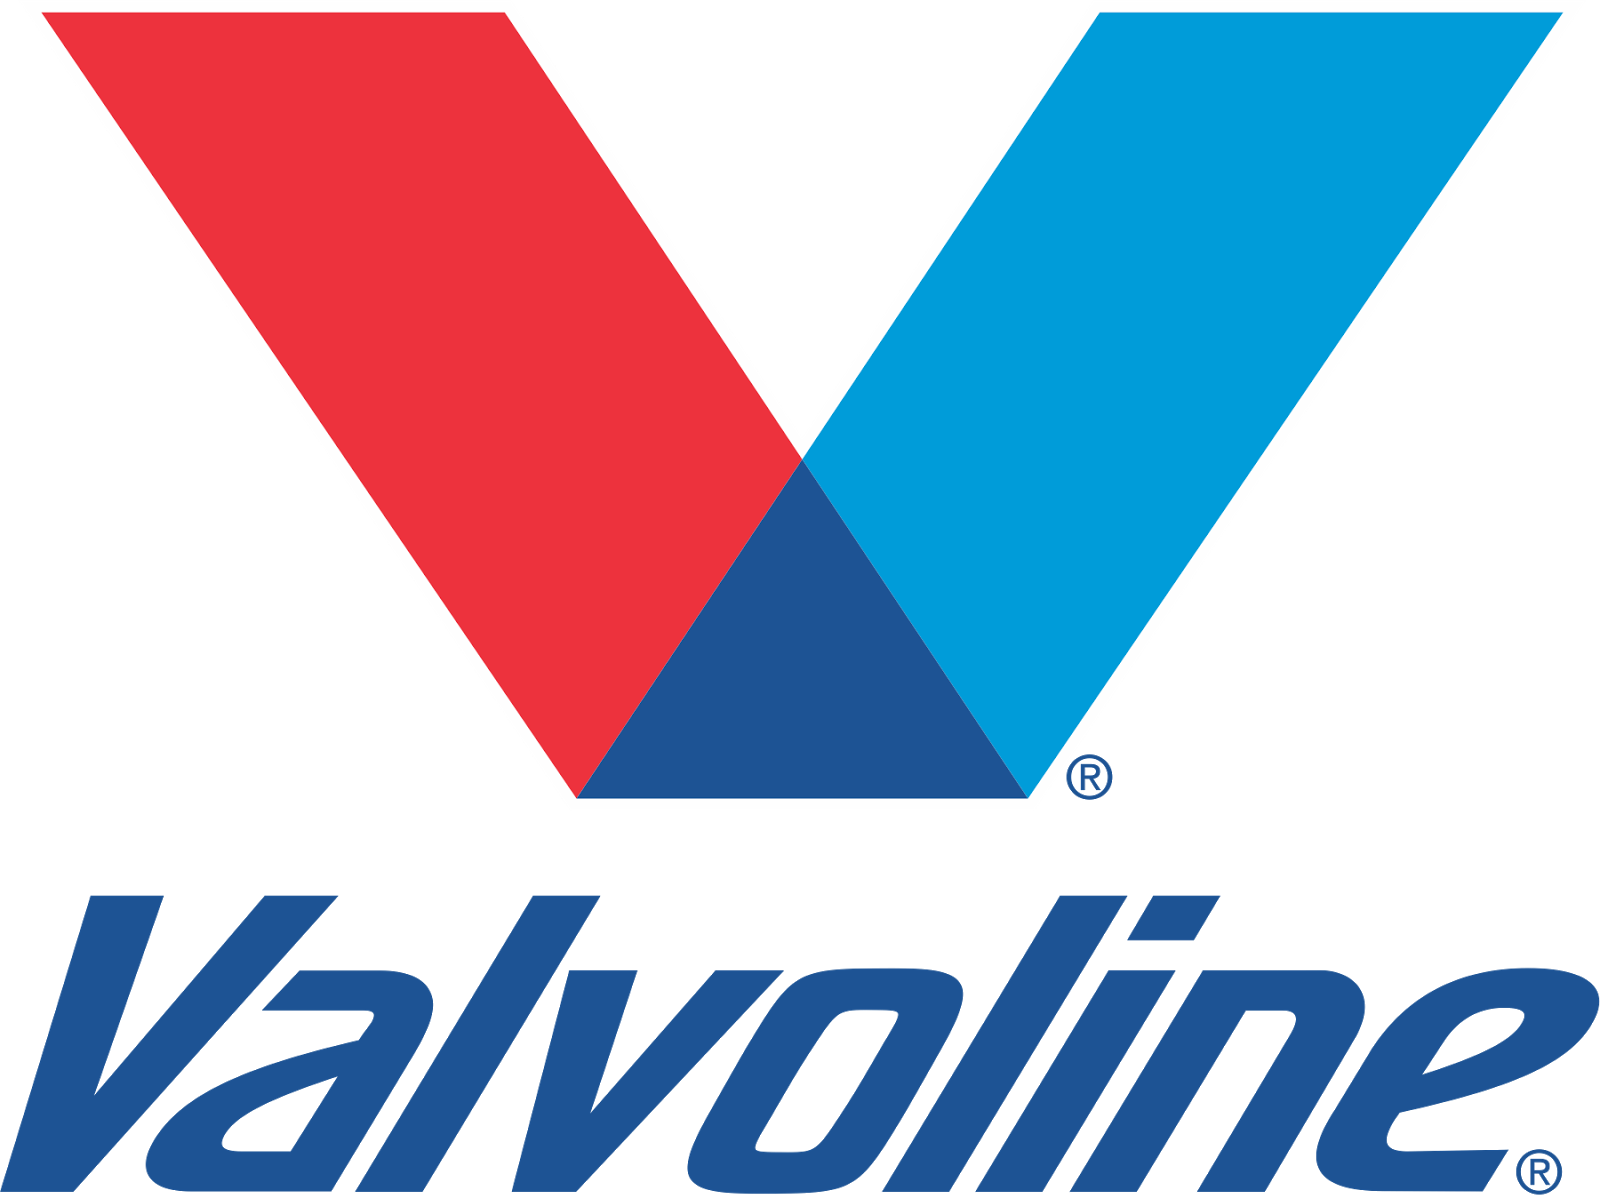 Valvoline Oil, D T Automotive LLC, Auburn, MA, 01501